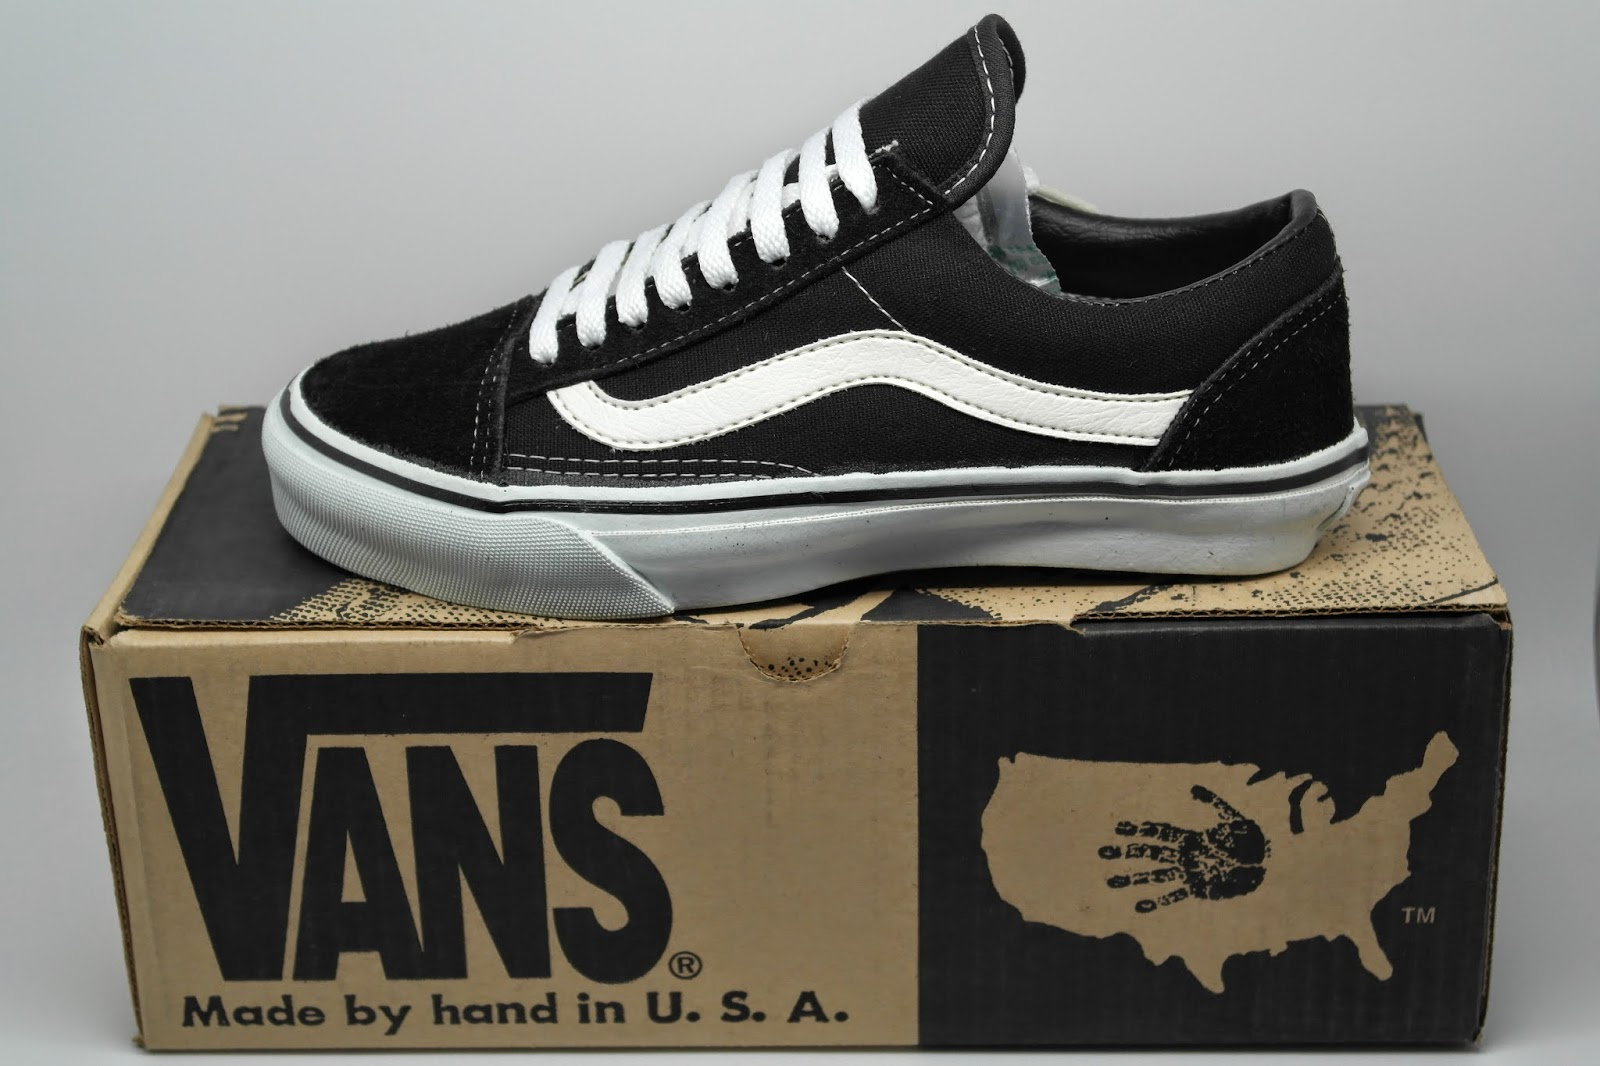 vans old skool made in usa